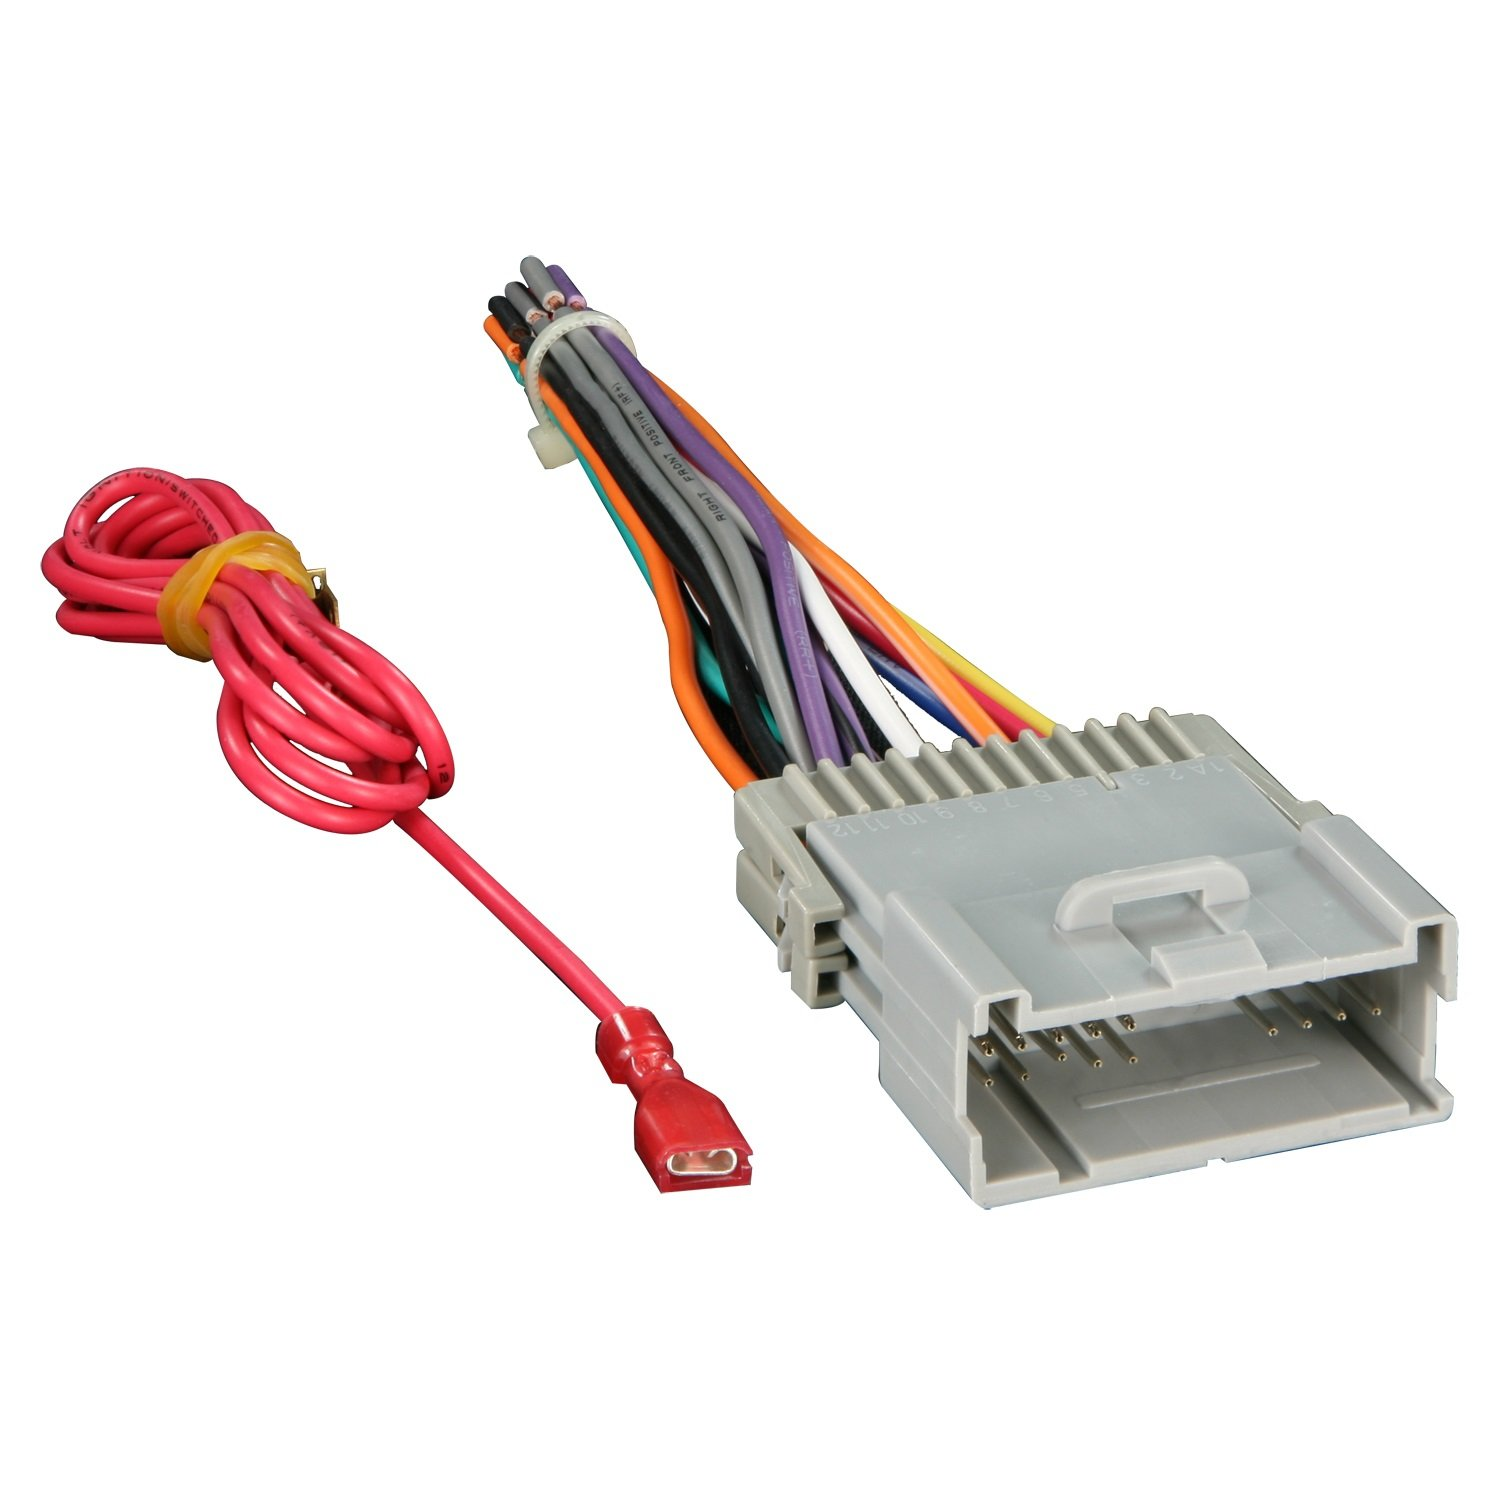 61eewxp9orL._SL1500_ amazon com metra 70 2003 radio wiring harness for gm 98 08 wiring harness for car stereo installation at alyssarenee.co